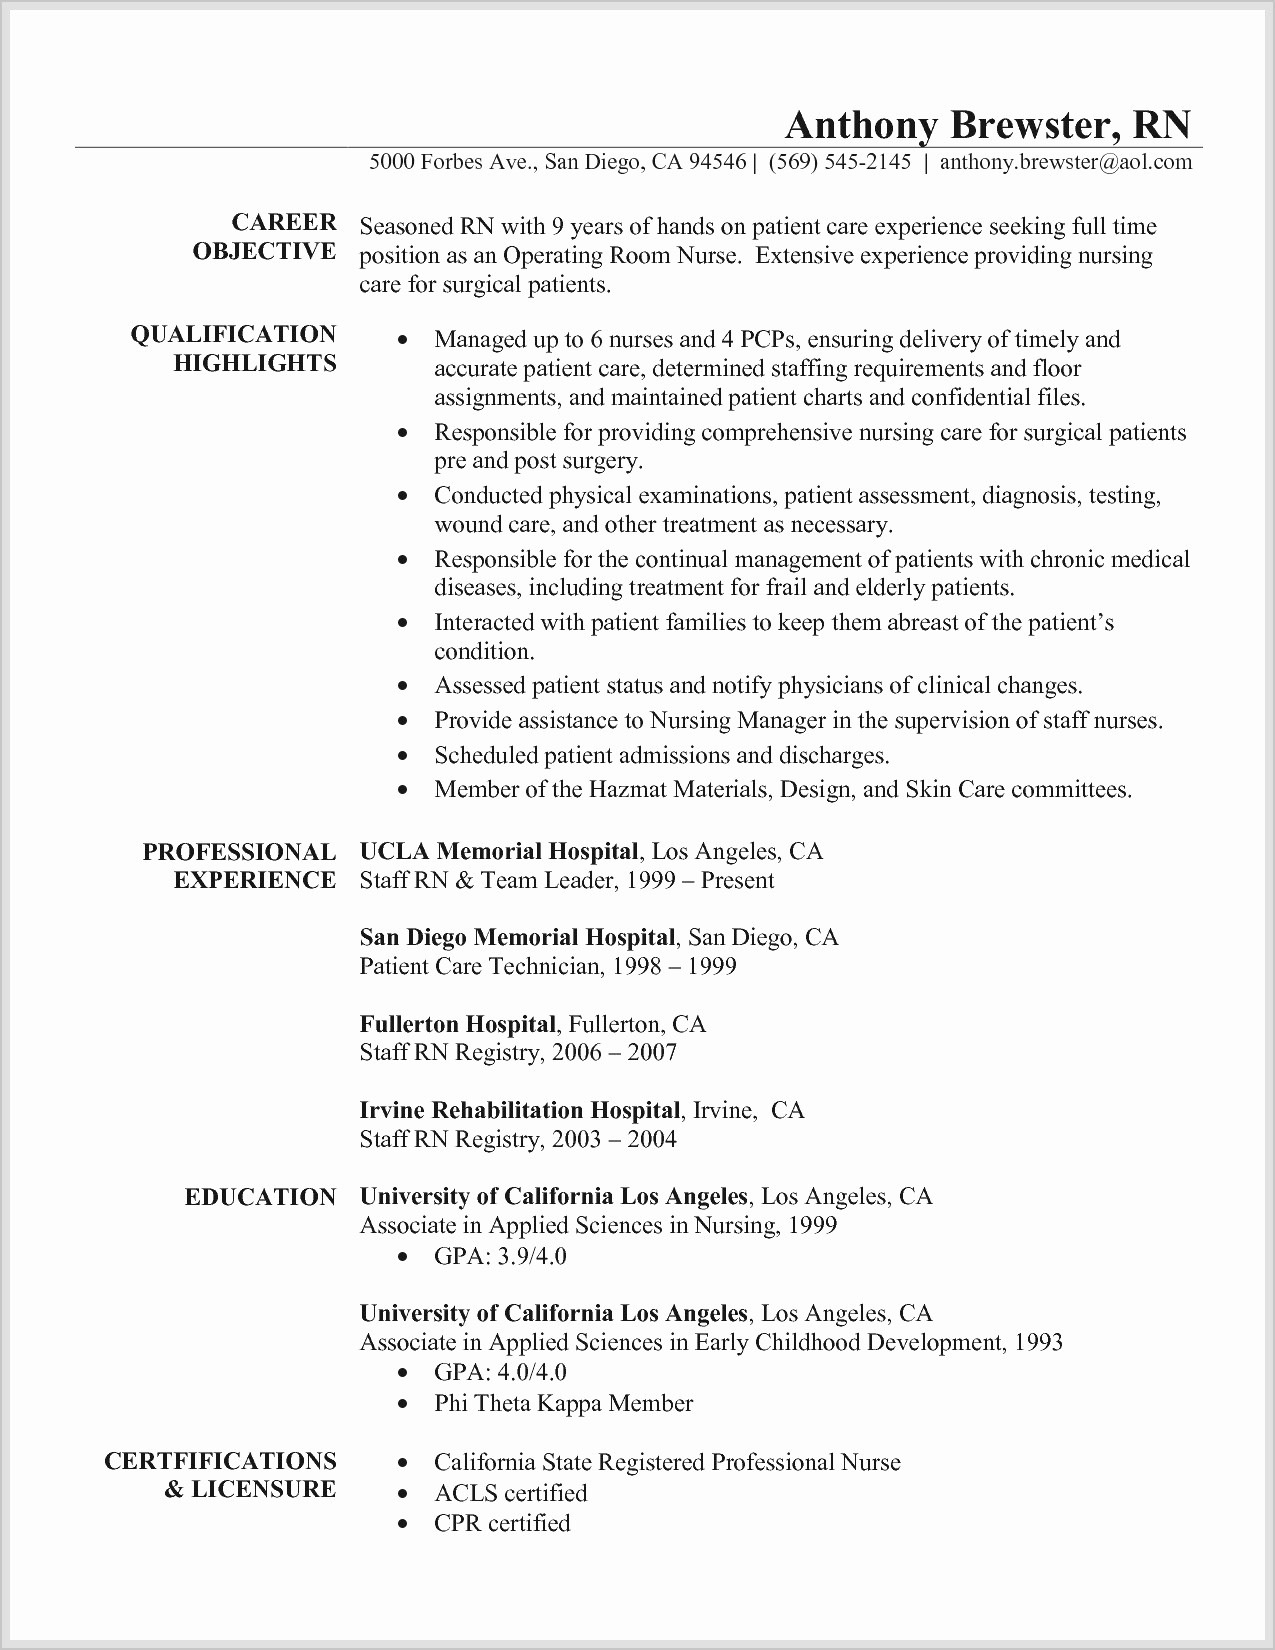 Rn Resume Templates - Rn Resume Template Beautiful Rn Resume Templates New New Nurse